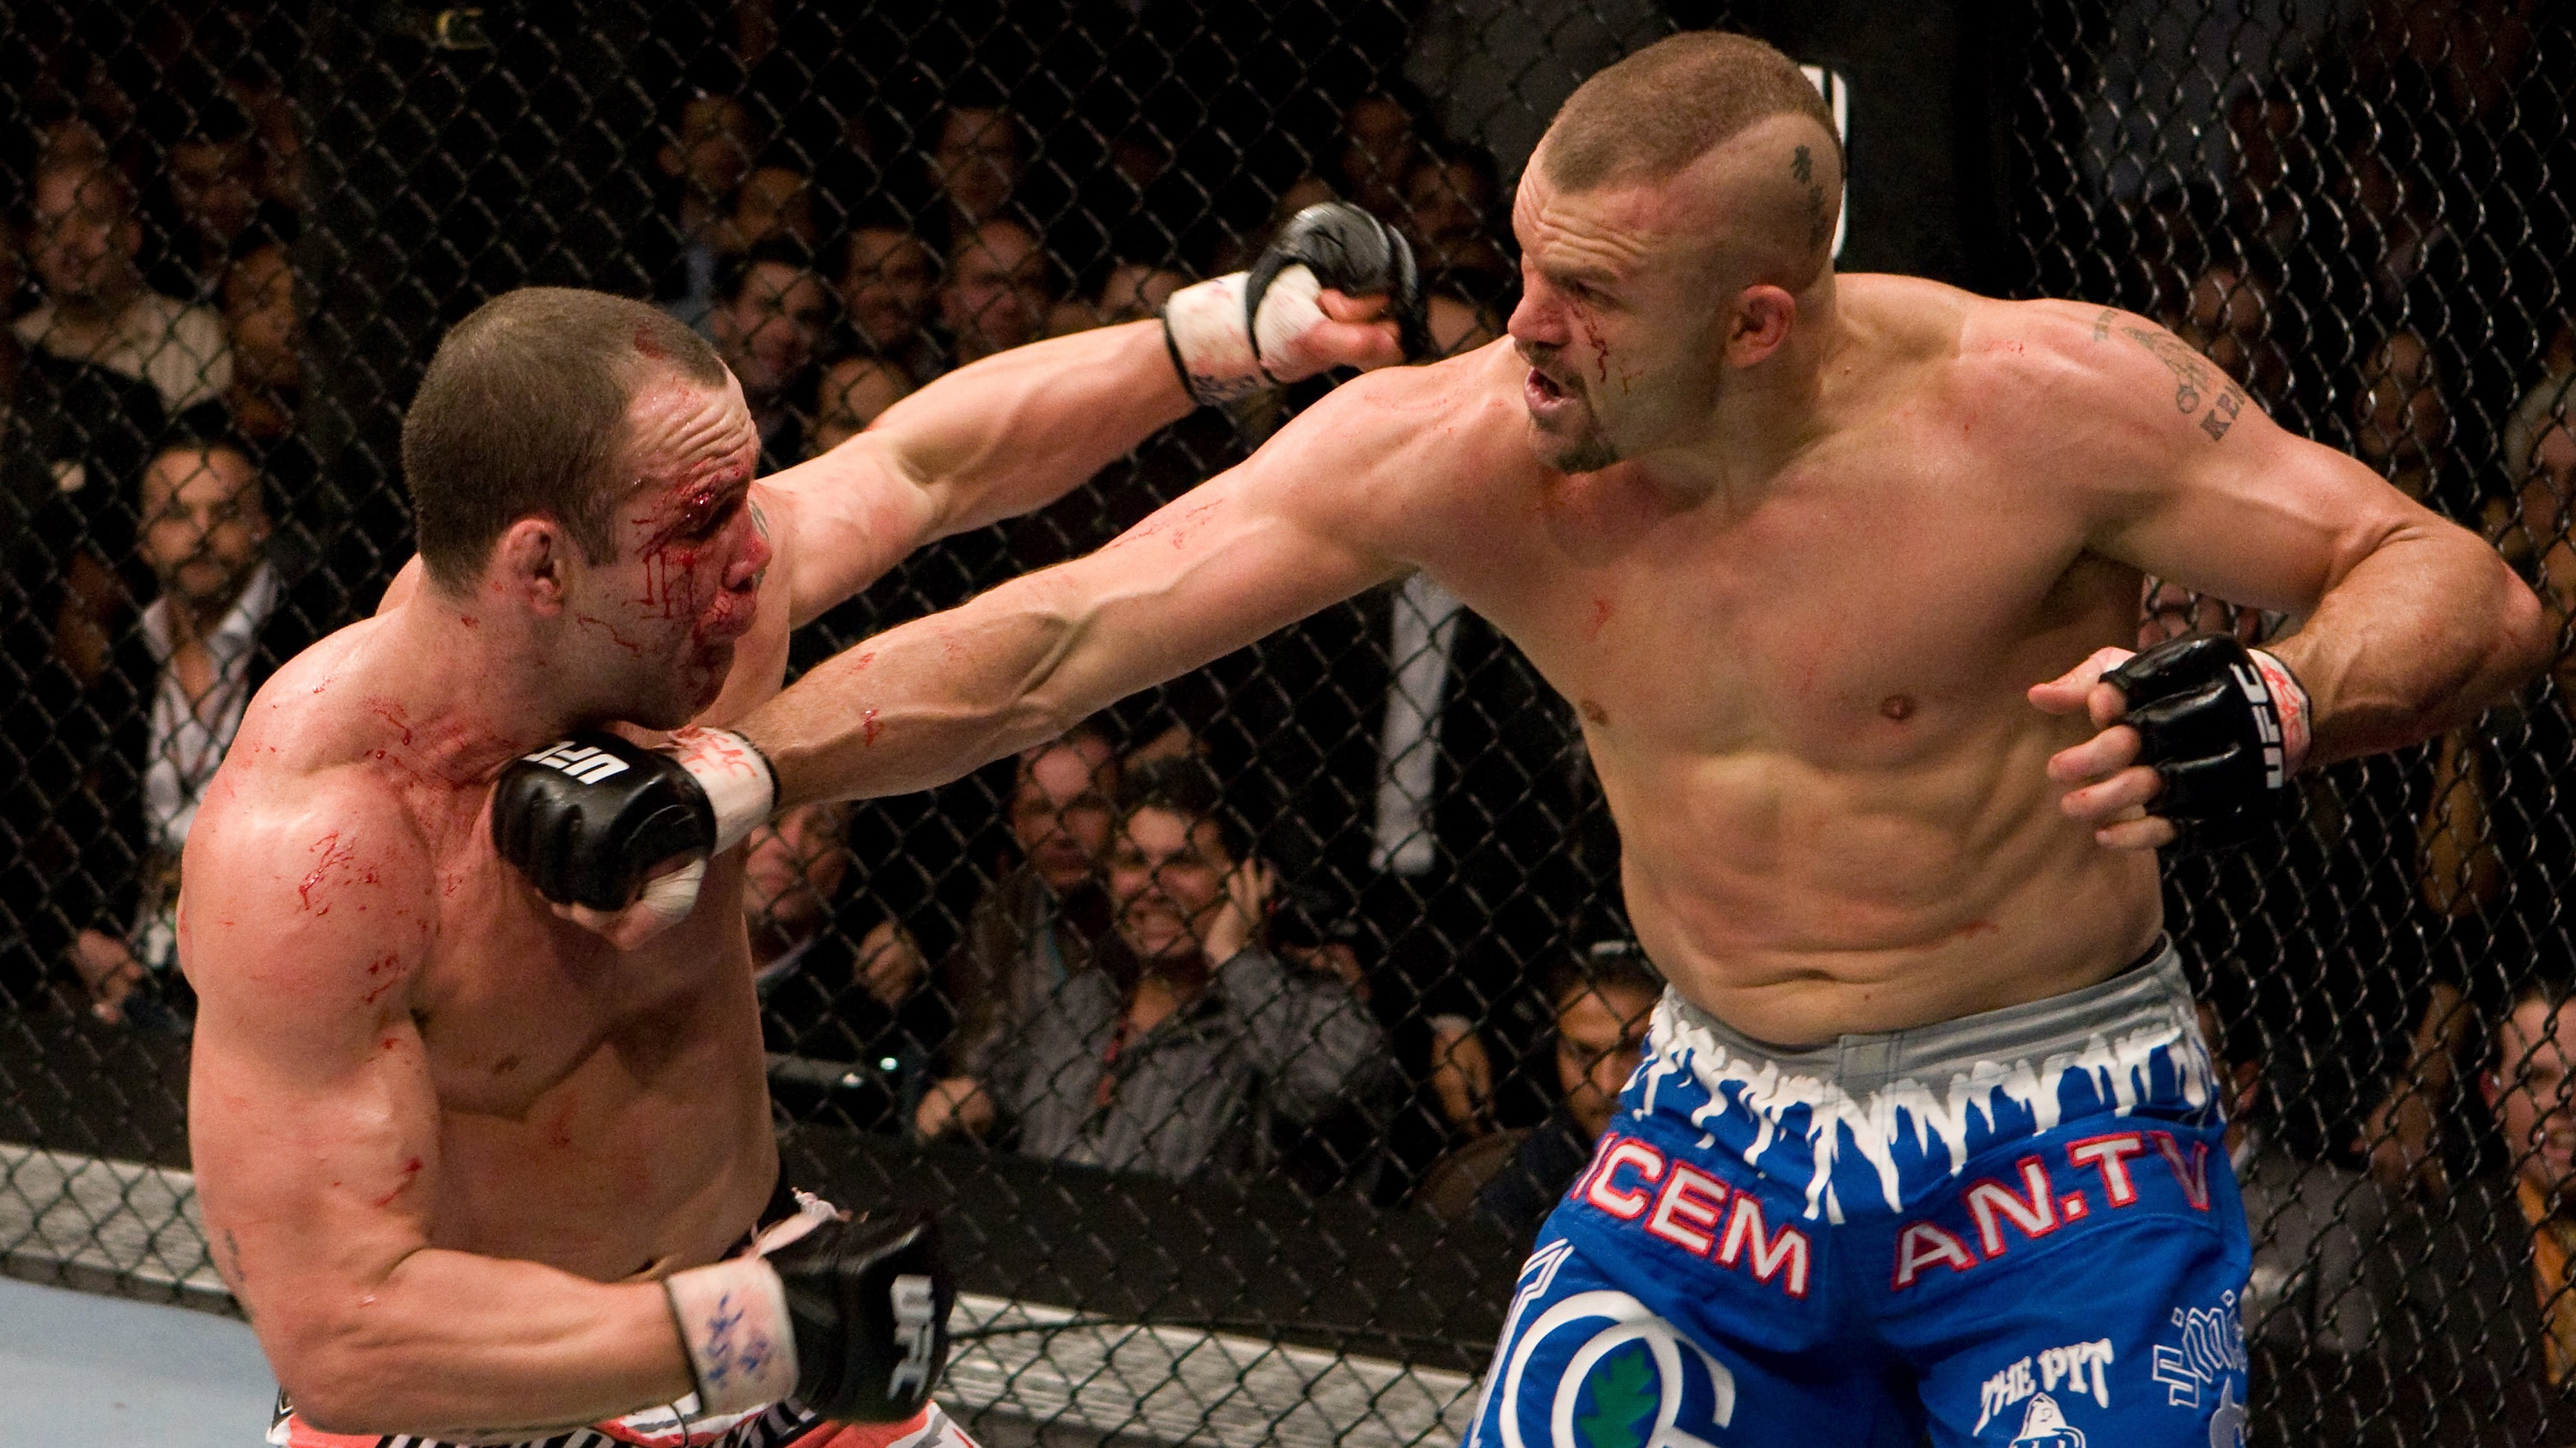 Chuck Liddell (Photo by Josh Hedges/Zuffa LLC via Getty Images)